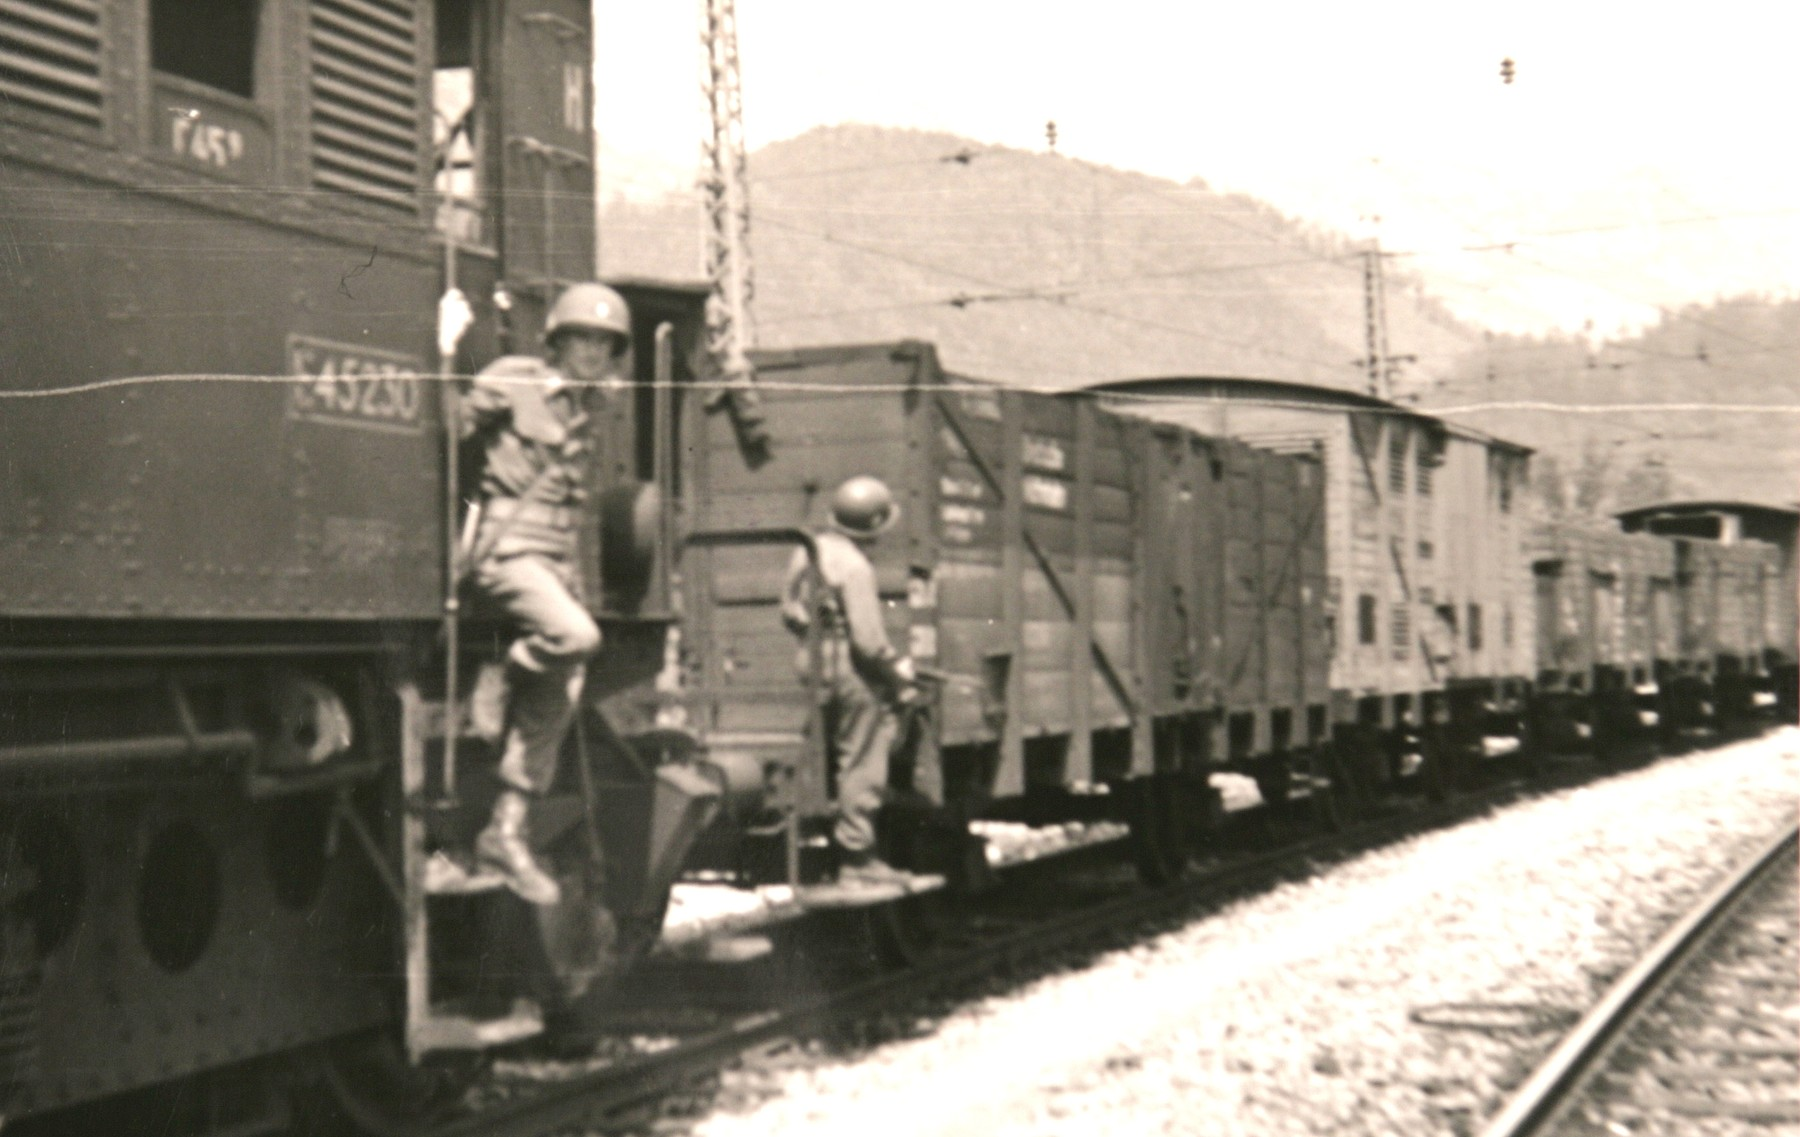 """American soldiers guard the Hungarian Gold Train in Werfen, Austria, soon after the American occupation authorities took custody of the train.  The original caption reads: """"Train with evacuated Hungarian art treasures."""""""